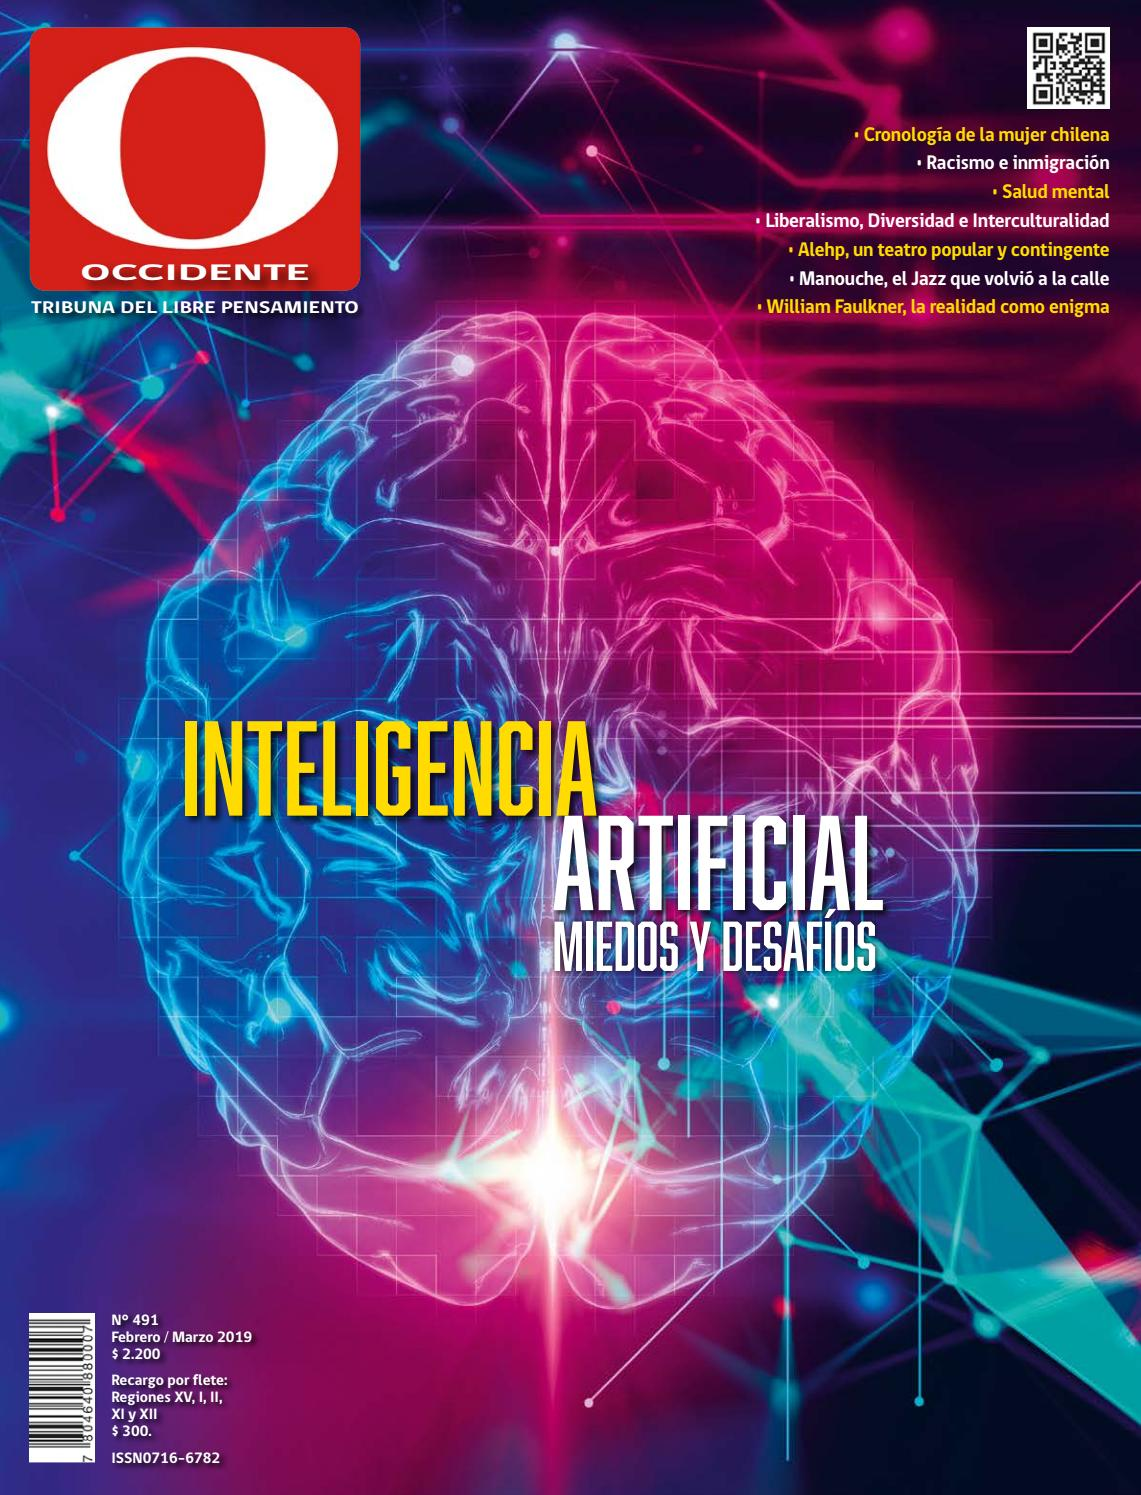 Revista Occidente N° 491 | Febrero/Marzo 2019 by Gran Logia de Chile - issuu